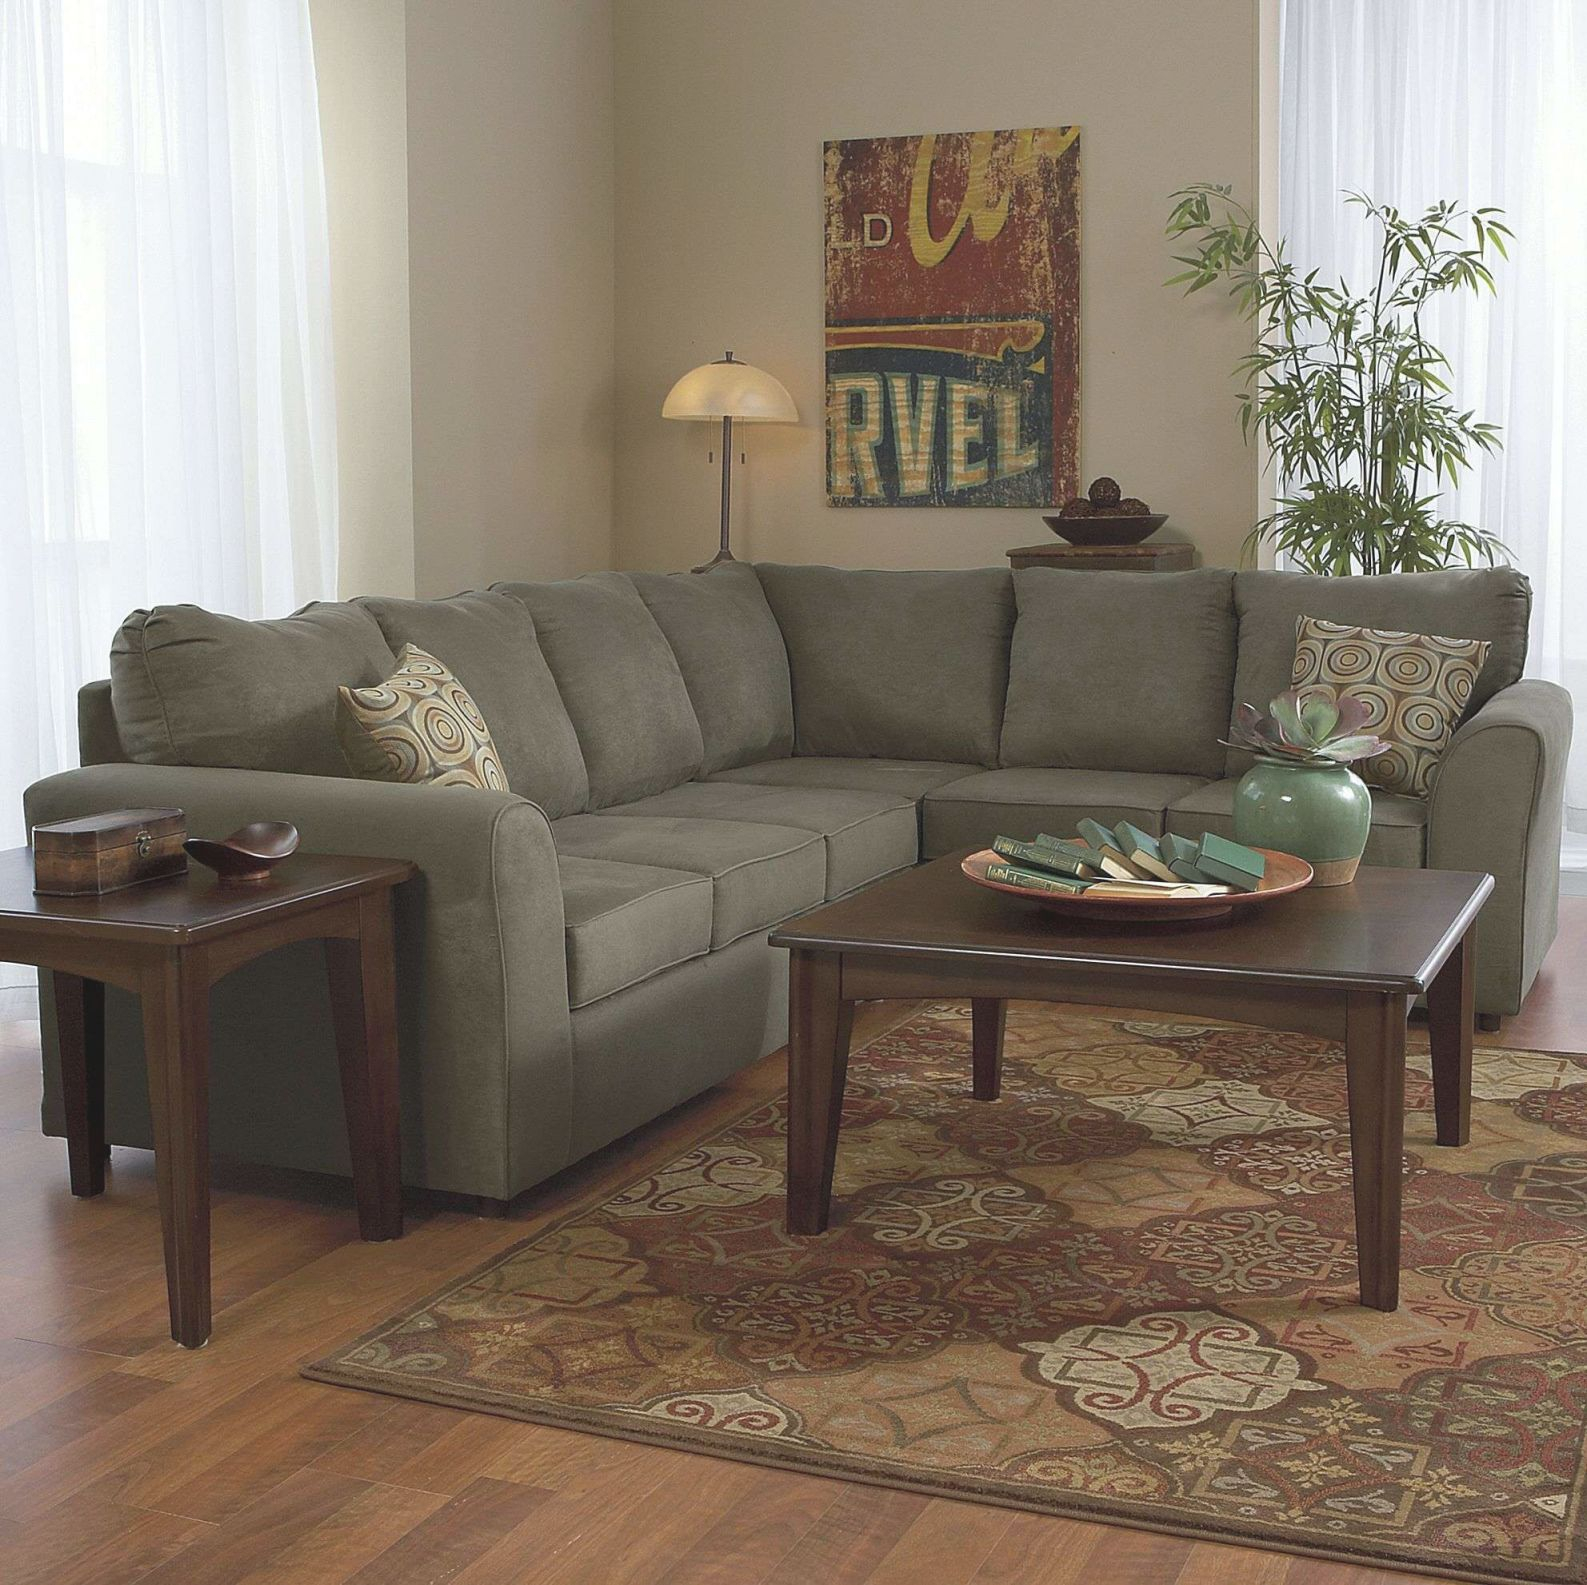 Attractive Design Ideas Jcpenney Living Room Furniture regarding Unique Sears Living Room Furniture